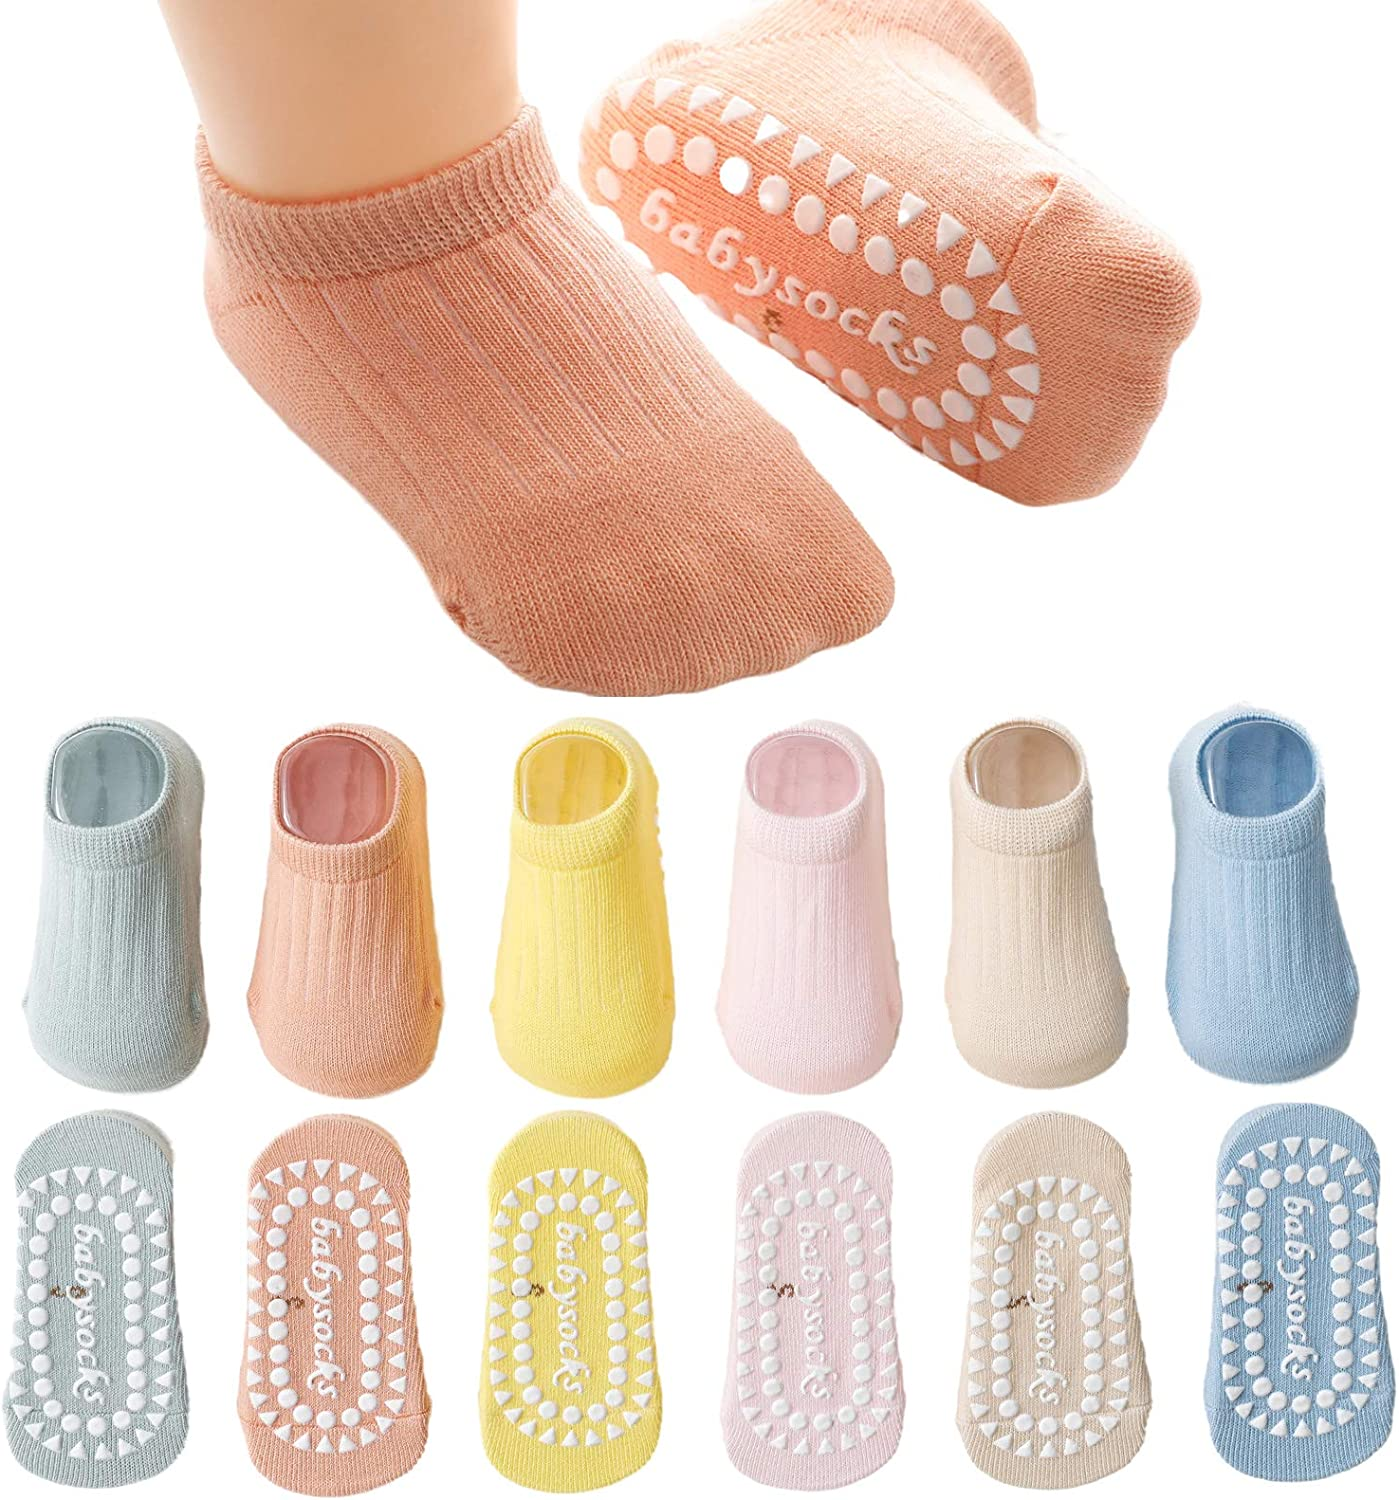 Kisgyst 6 Pairs Baby Girls Grip Ankle Socks Non Slip Soft Cozy Thin Low Cut Summer Socks Sneakers for 9-24 Months Toddler Little Kids